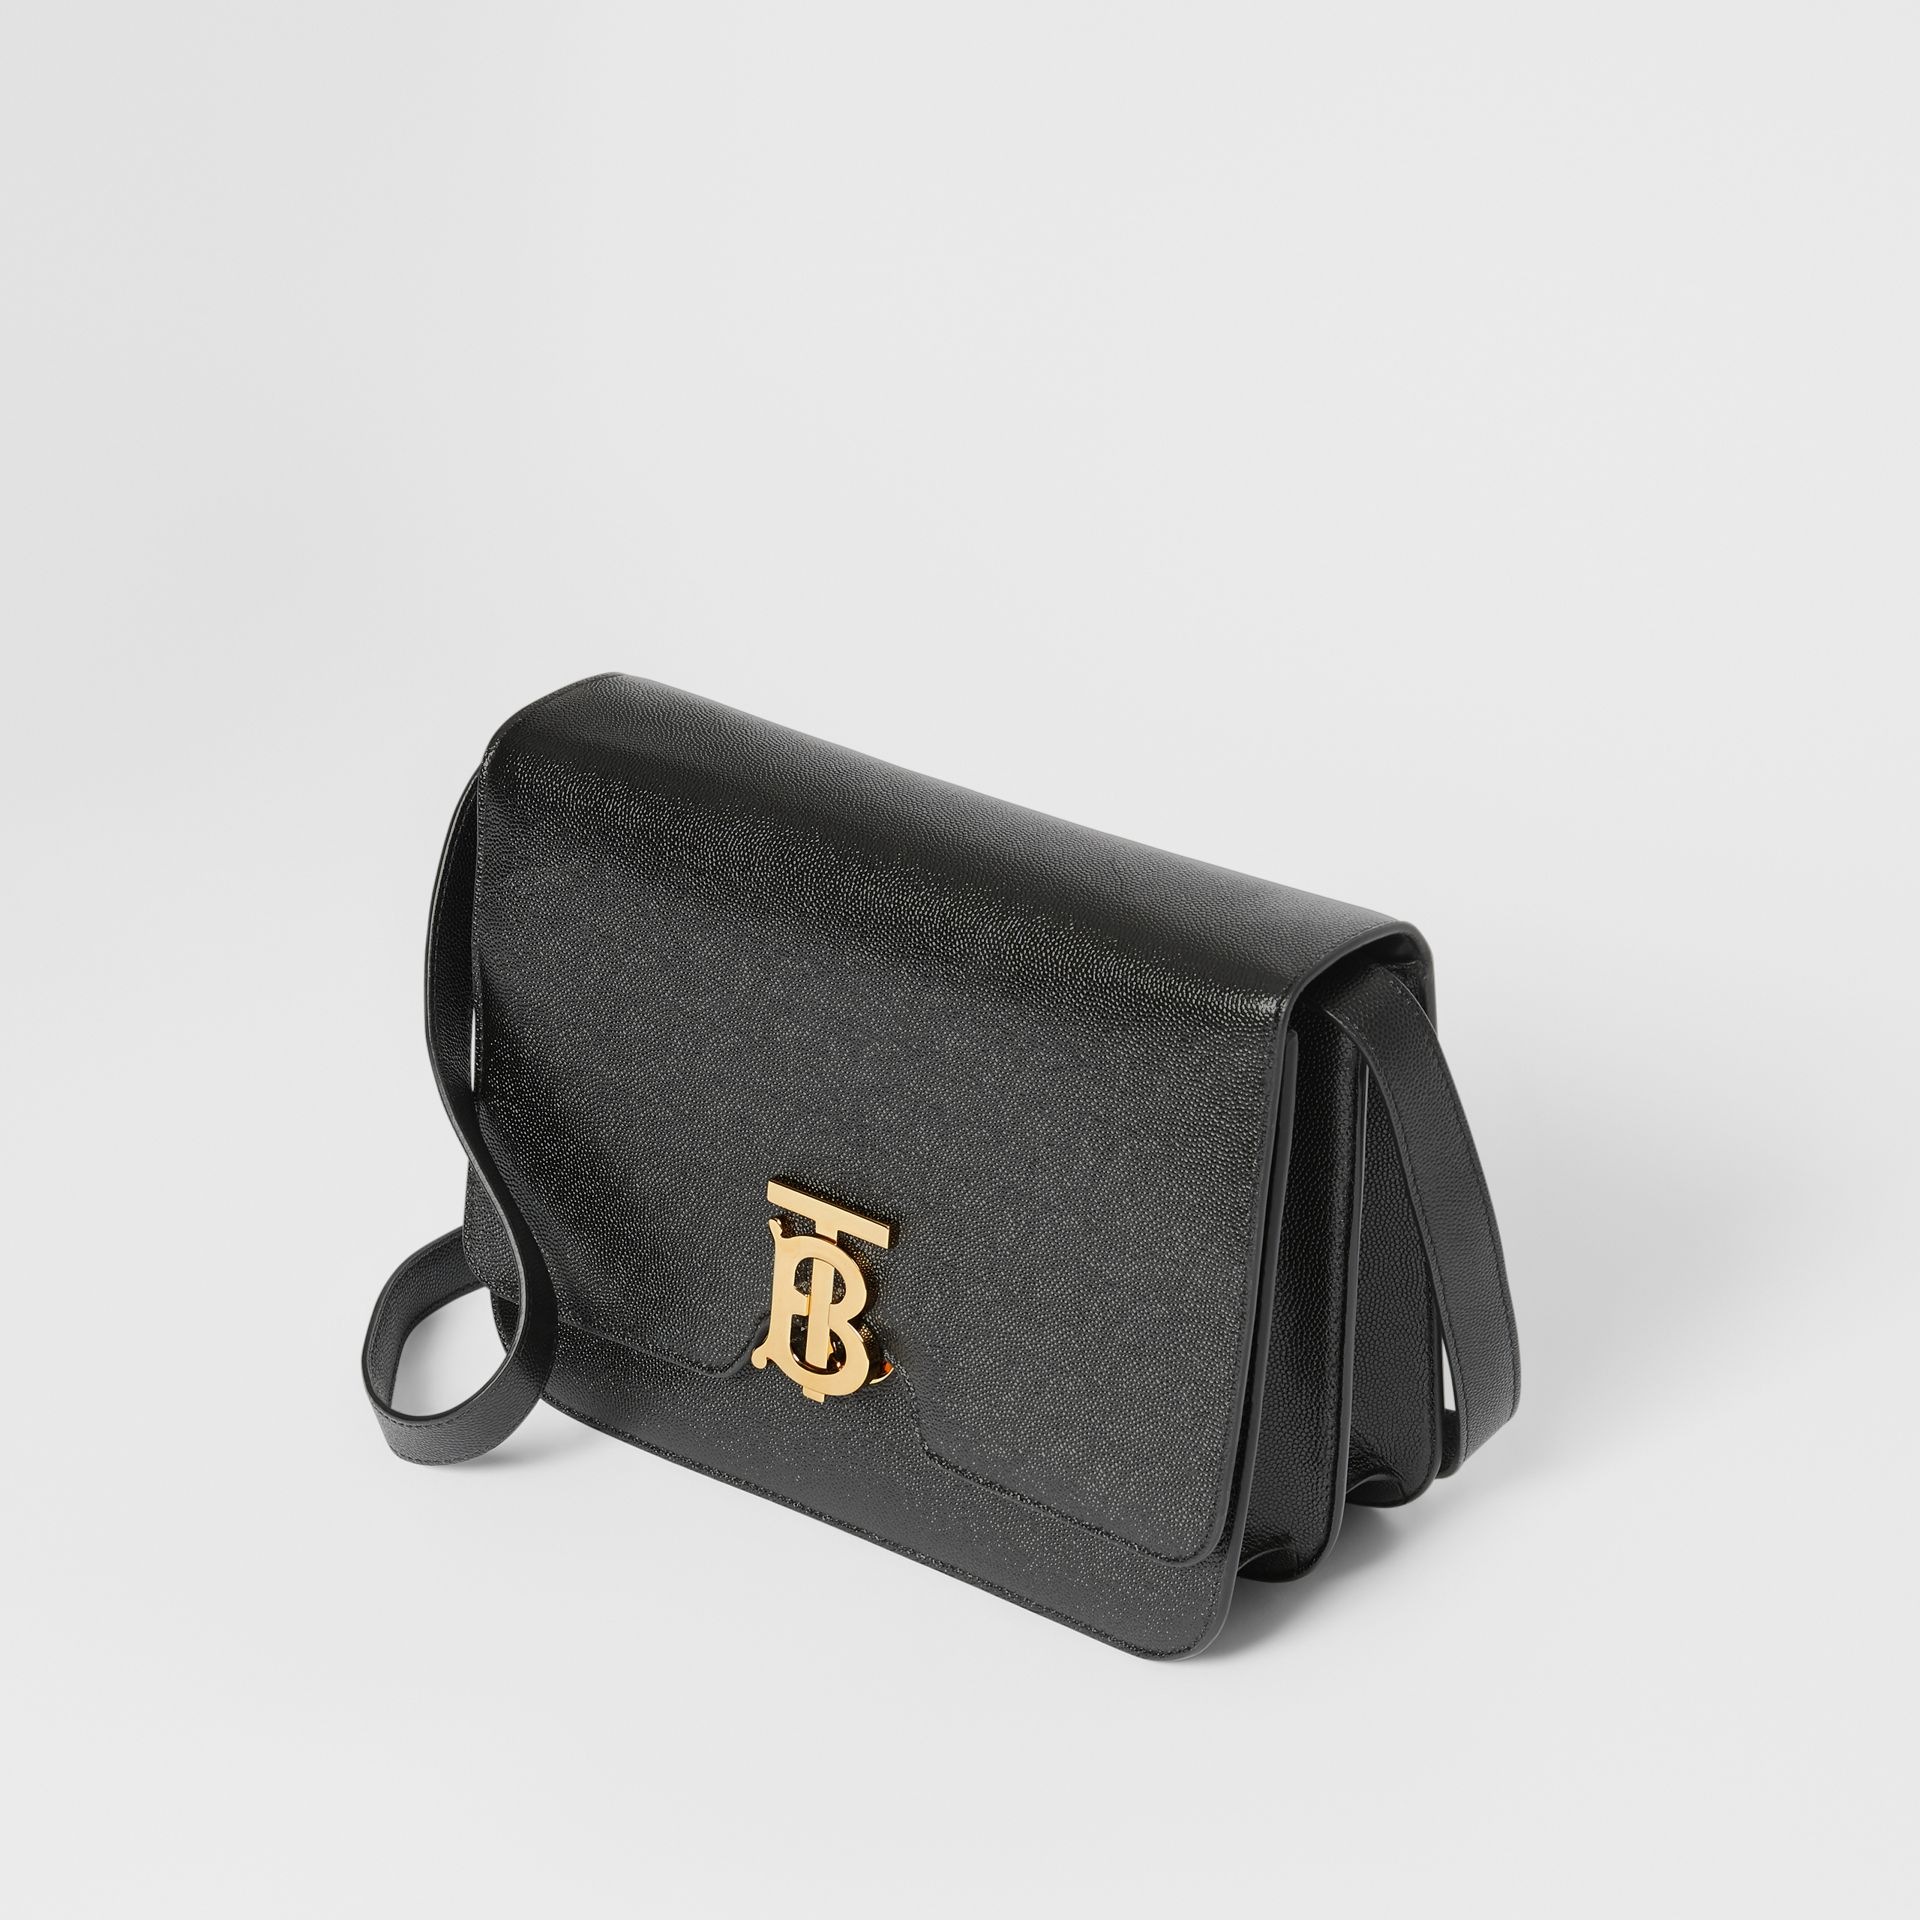 Medium Grainy Leather TB Bag in Black - Women | Burberry United Kingdom - gallery image 3